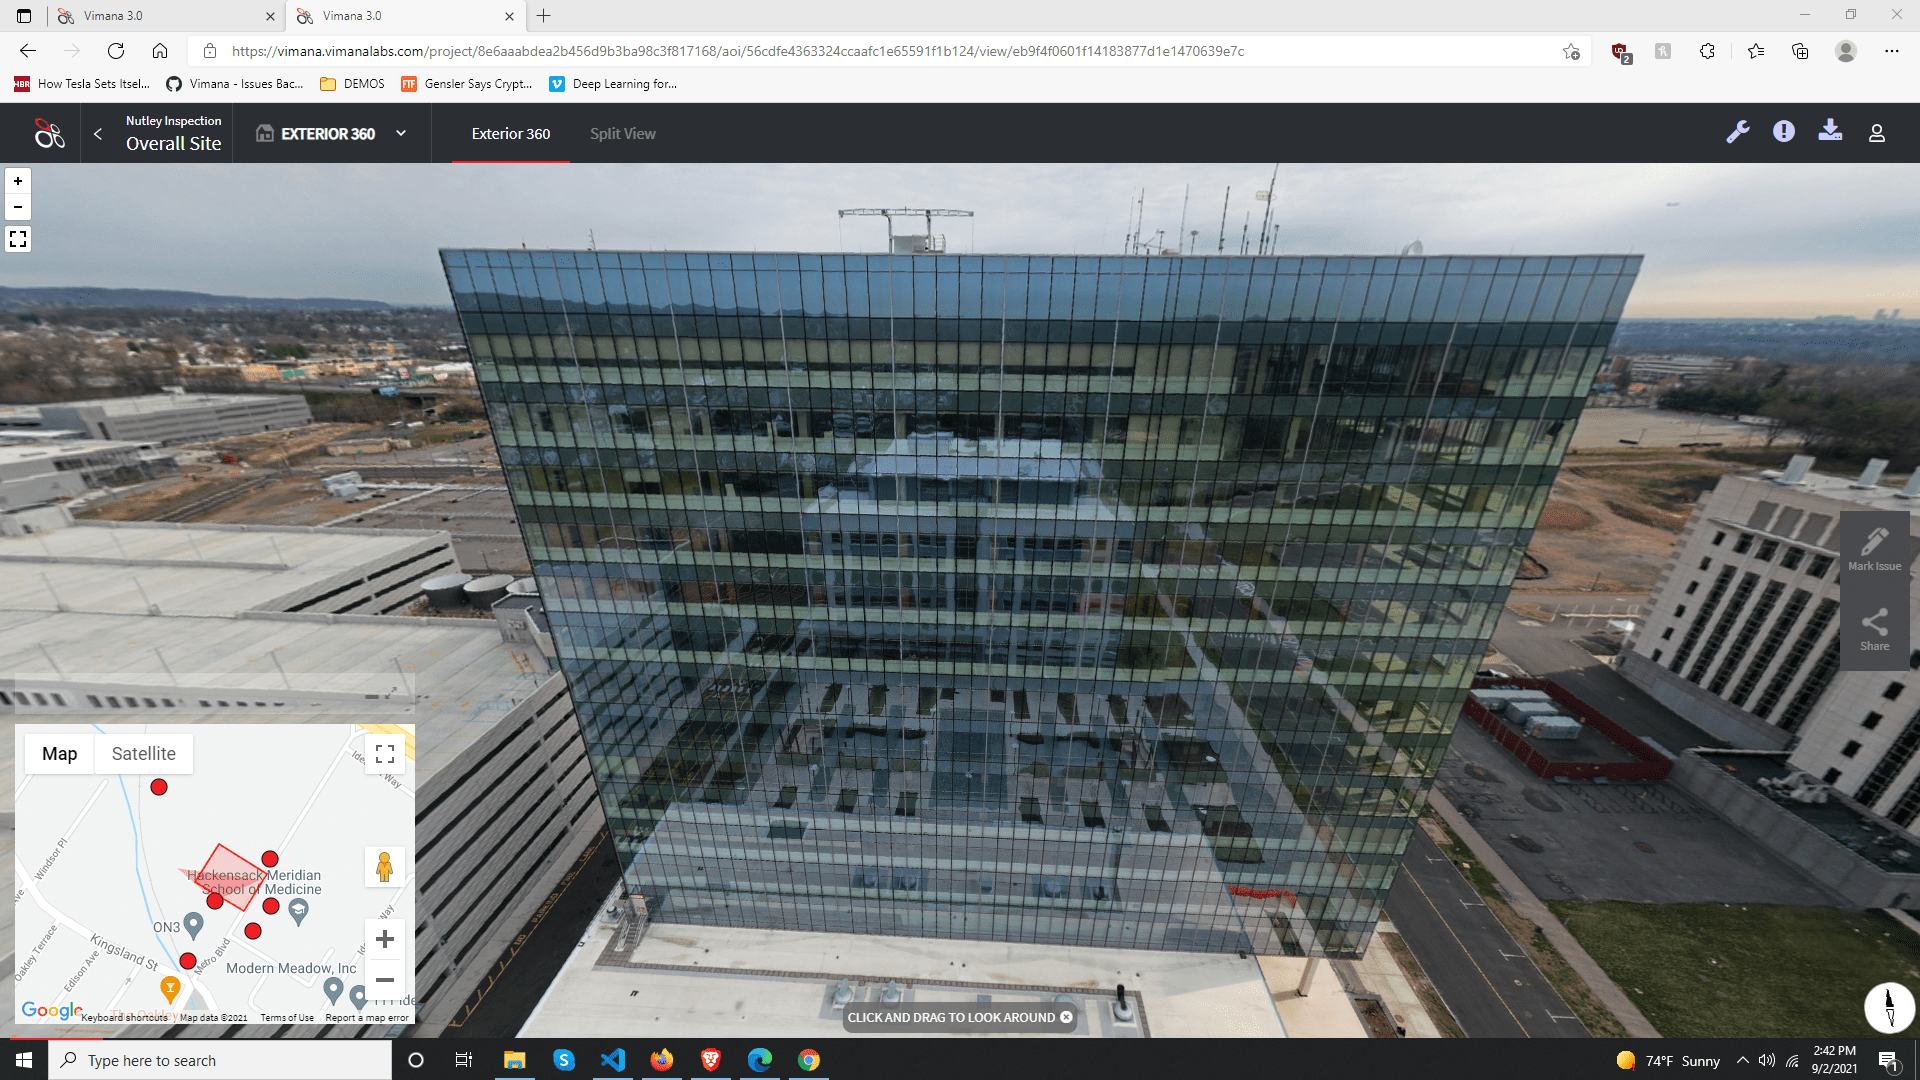 Glass Facade Inspected by Aspec Scire's Vimana using Drones